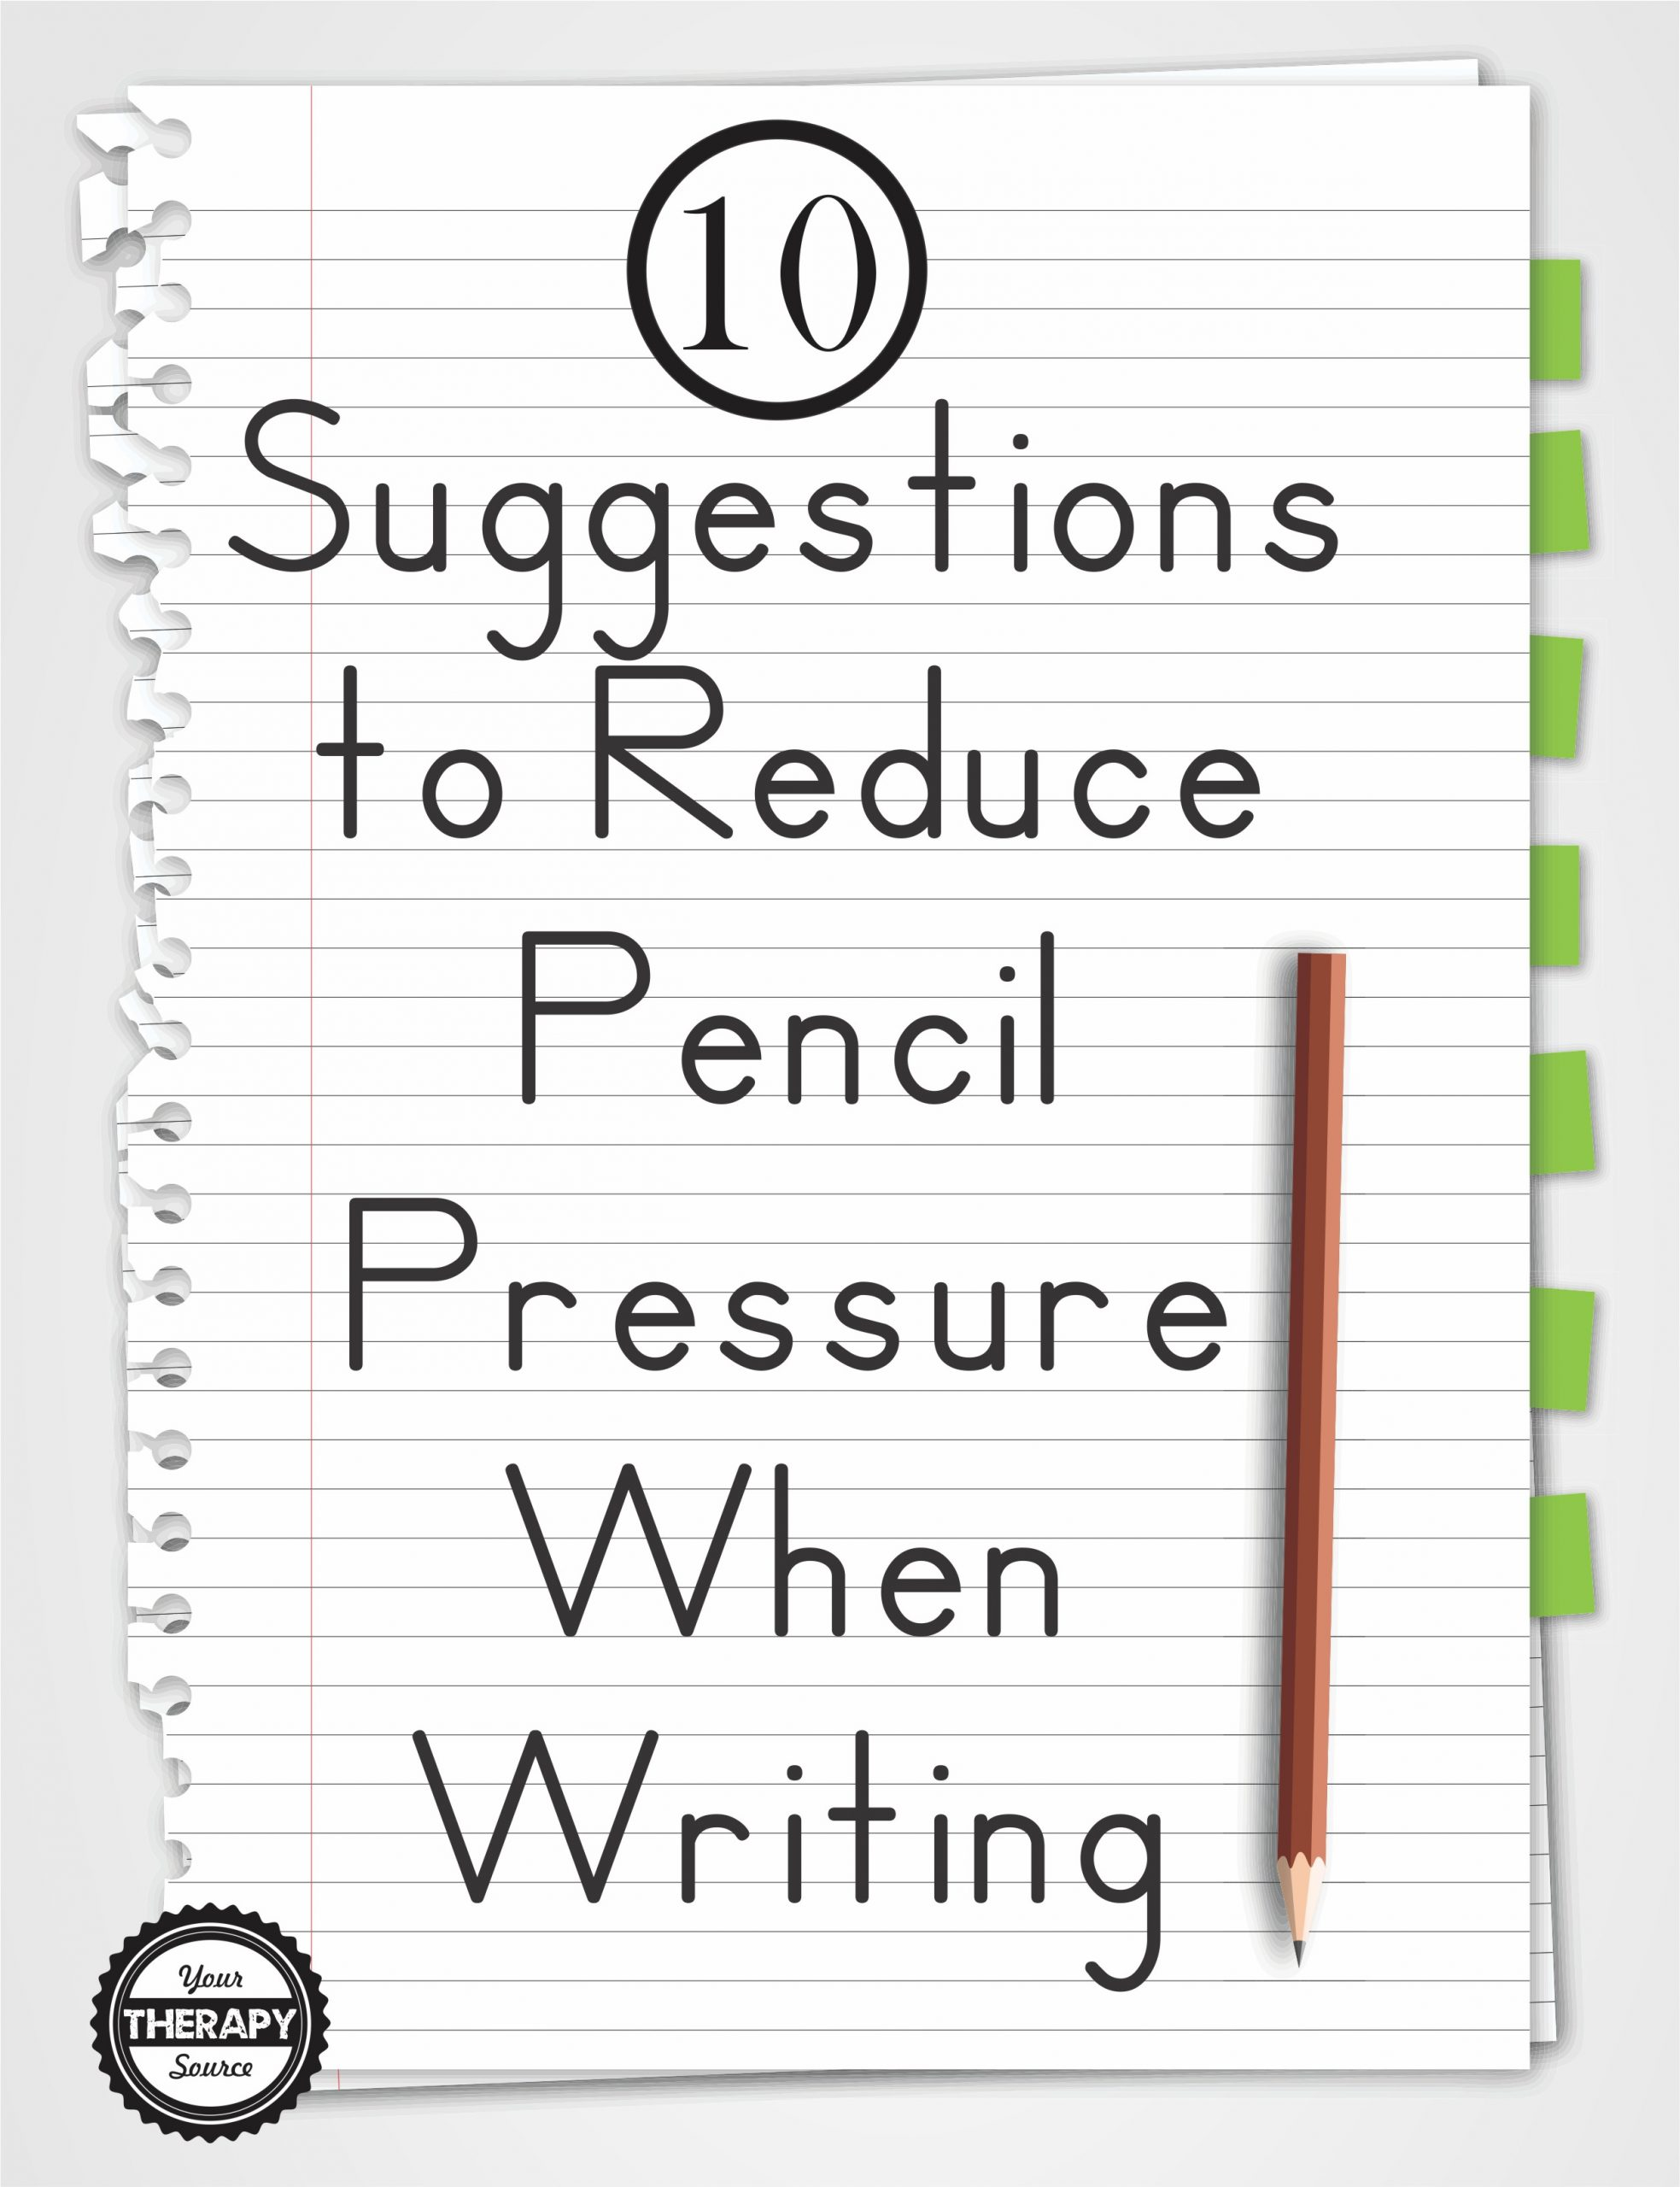 Occupational therapy Handwriting Worksheets 10 Suggestions to Reduce Pencil Pressure when Writing Your